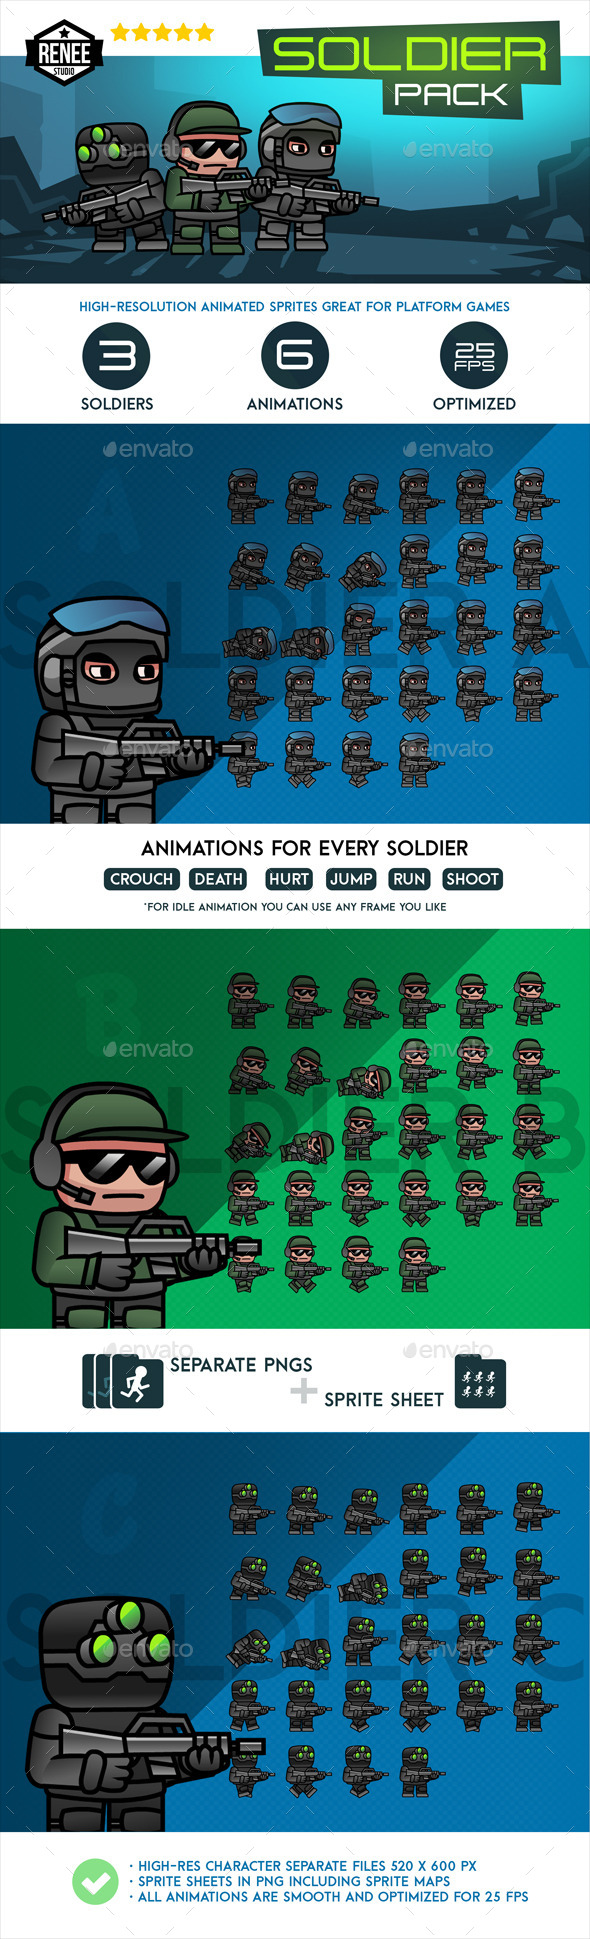 Soldier Pack Animated Spritesheet